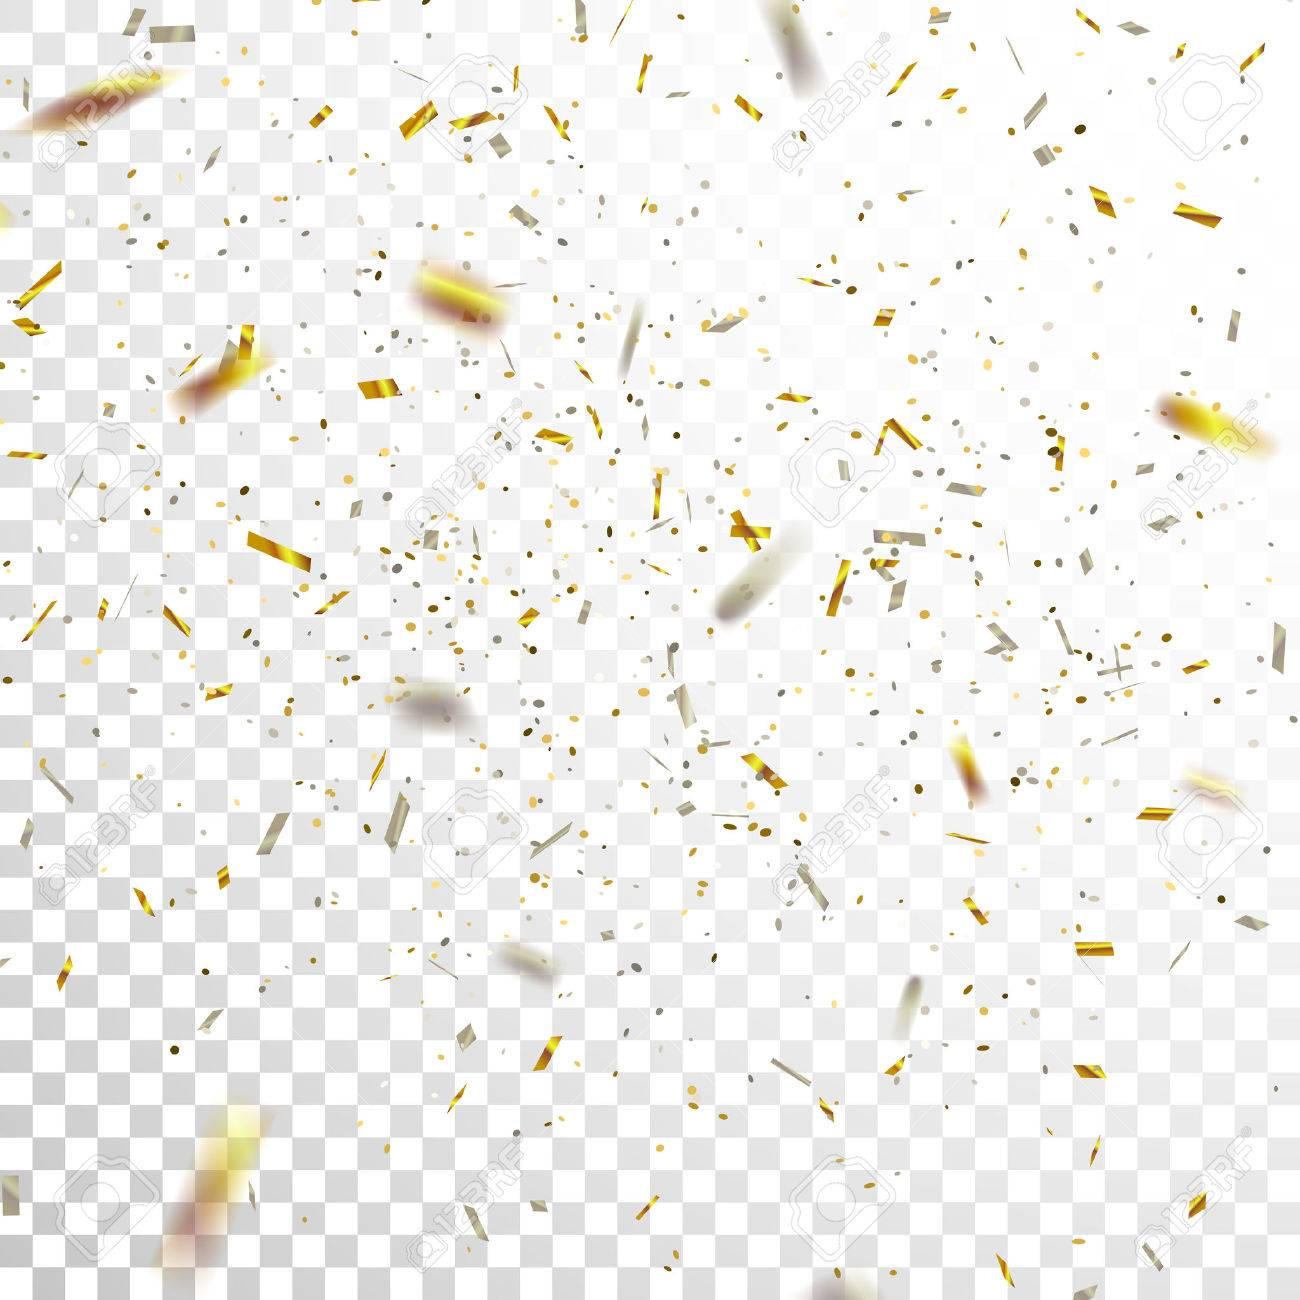 Golden and Silver Confetti. Vector Festive Illustration of Falling Shiny Confetti Glitters Isolated on Transparent Checkered Background. Holiday Decorative Tinsel Element for Design - 65406899